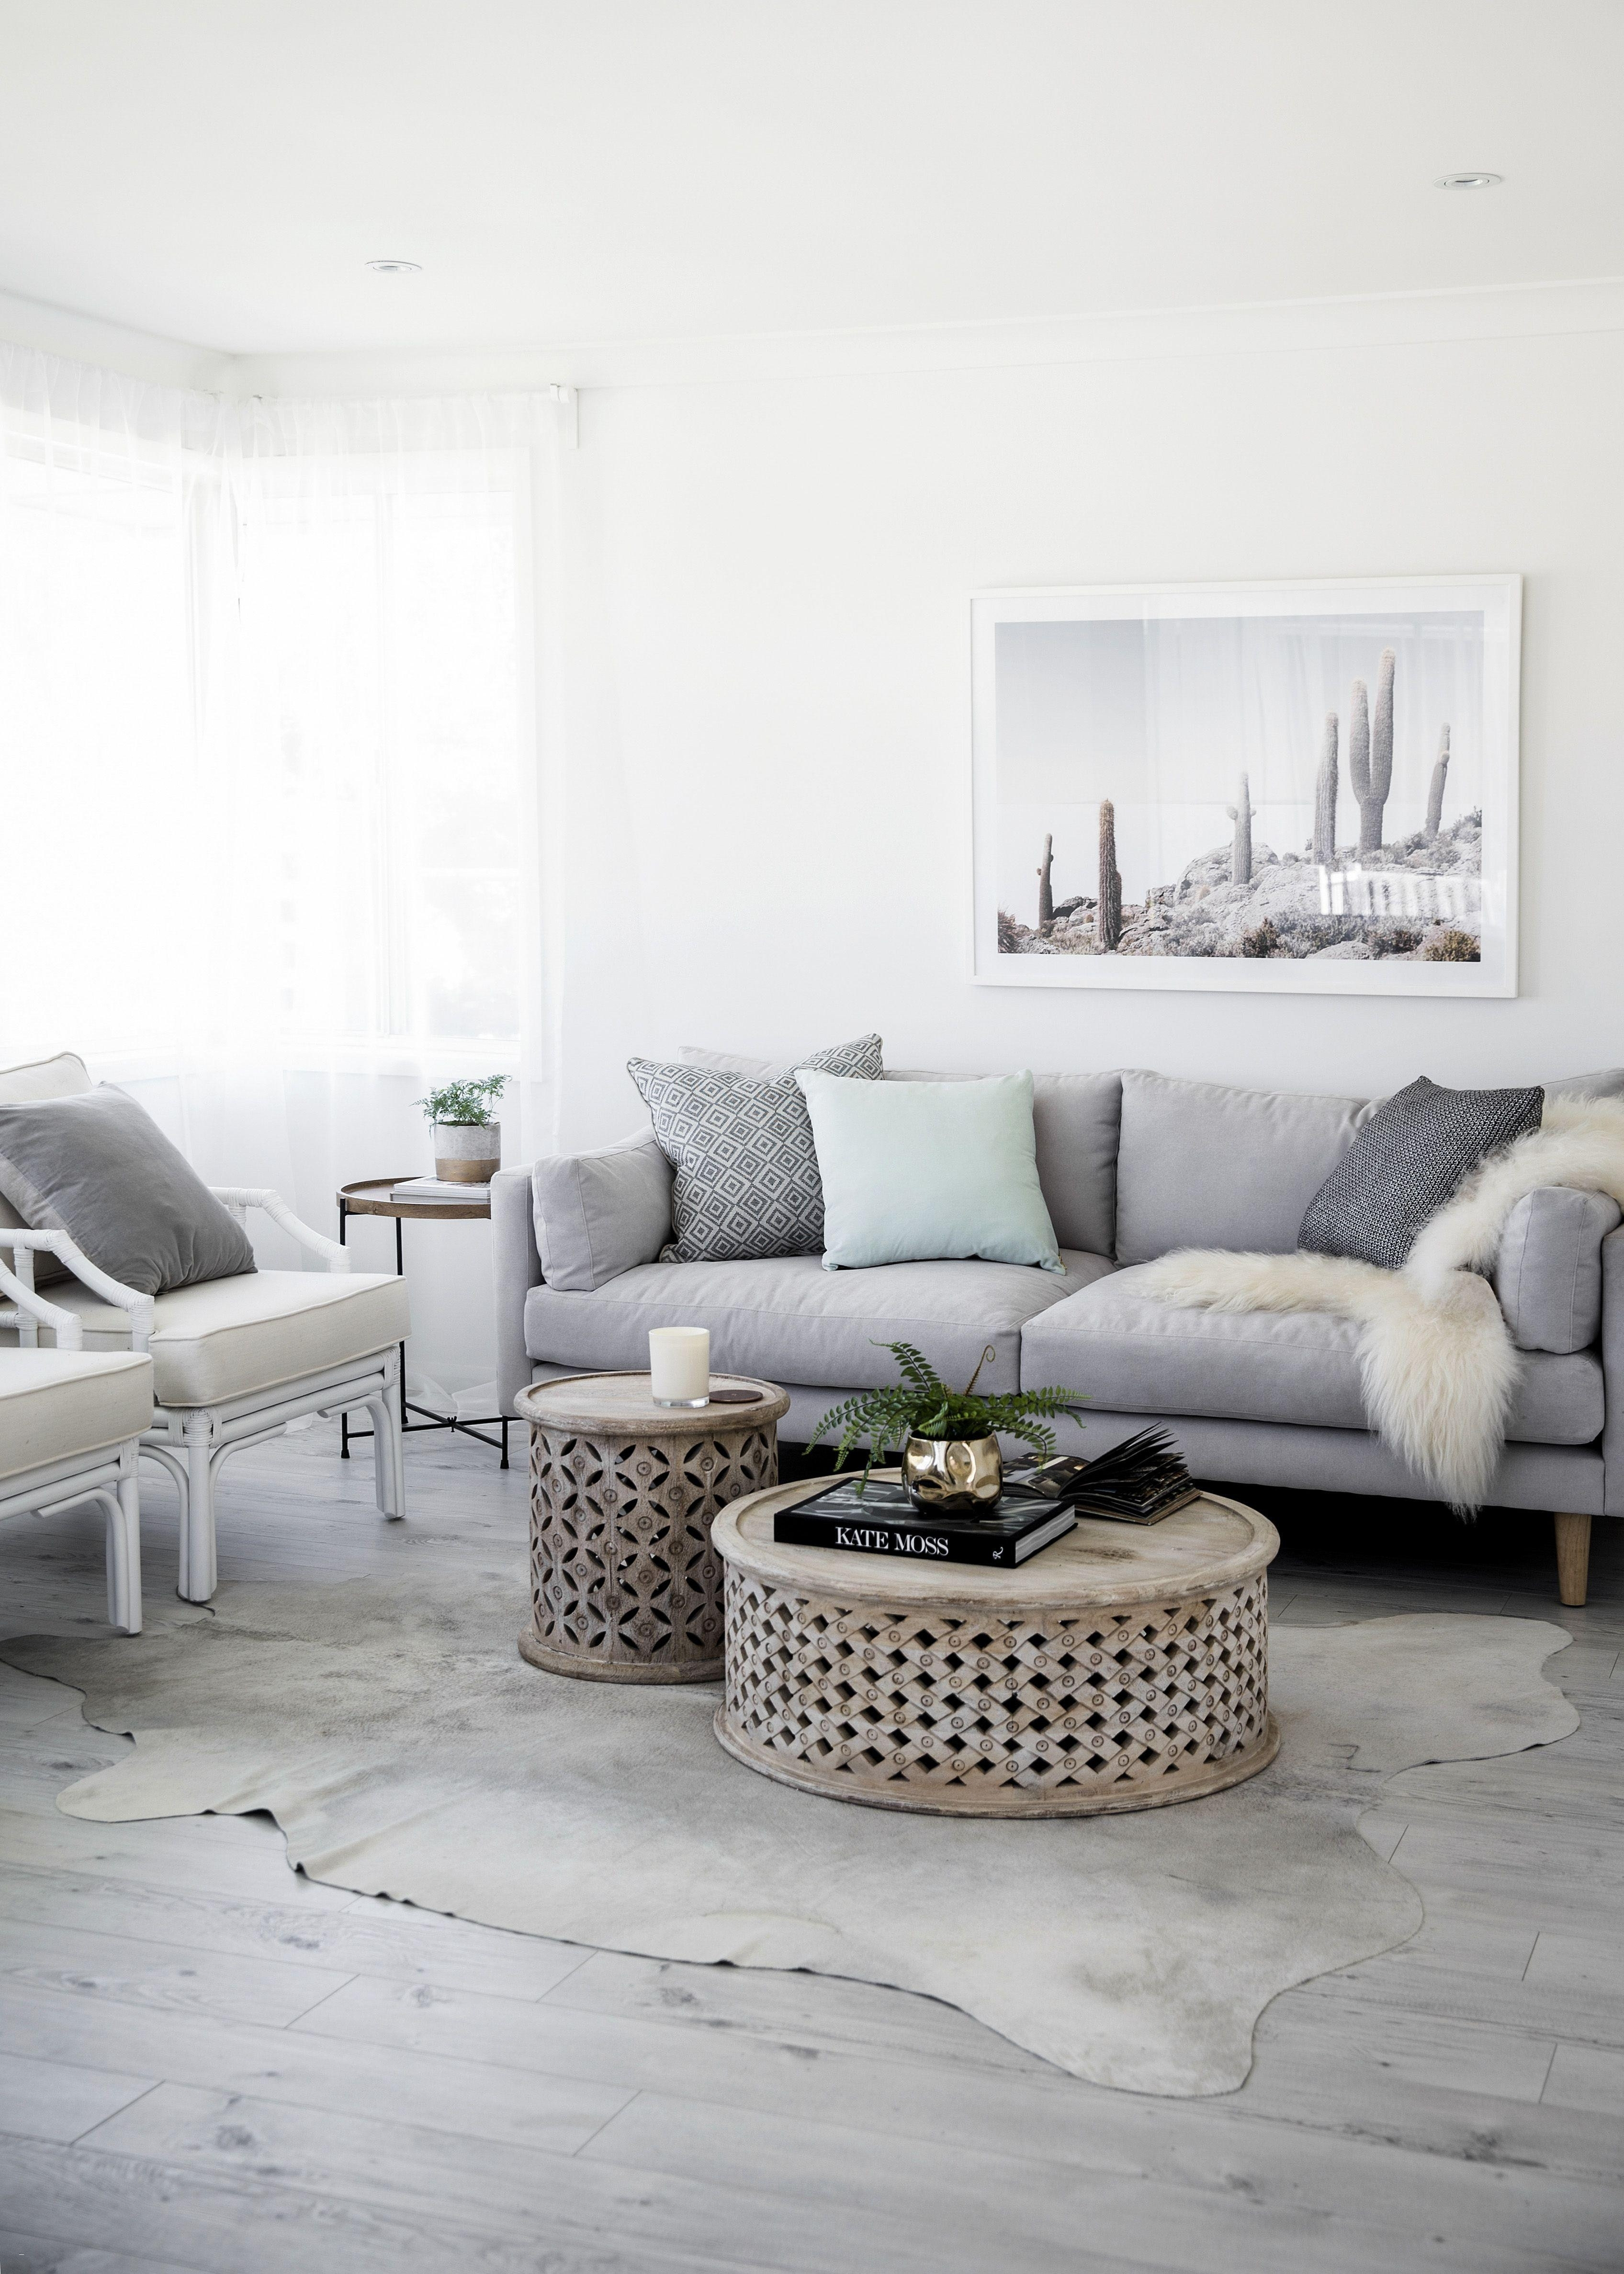 27 Inspirational Light Grey Sofa Decorating Ideas Images with Aquarius Dark Grey 2 Piece Sectionals With Raf Chaise (Image 3 of 30)